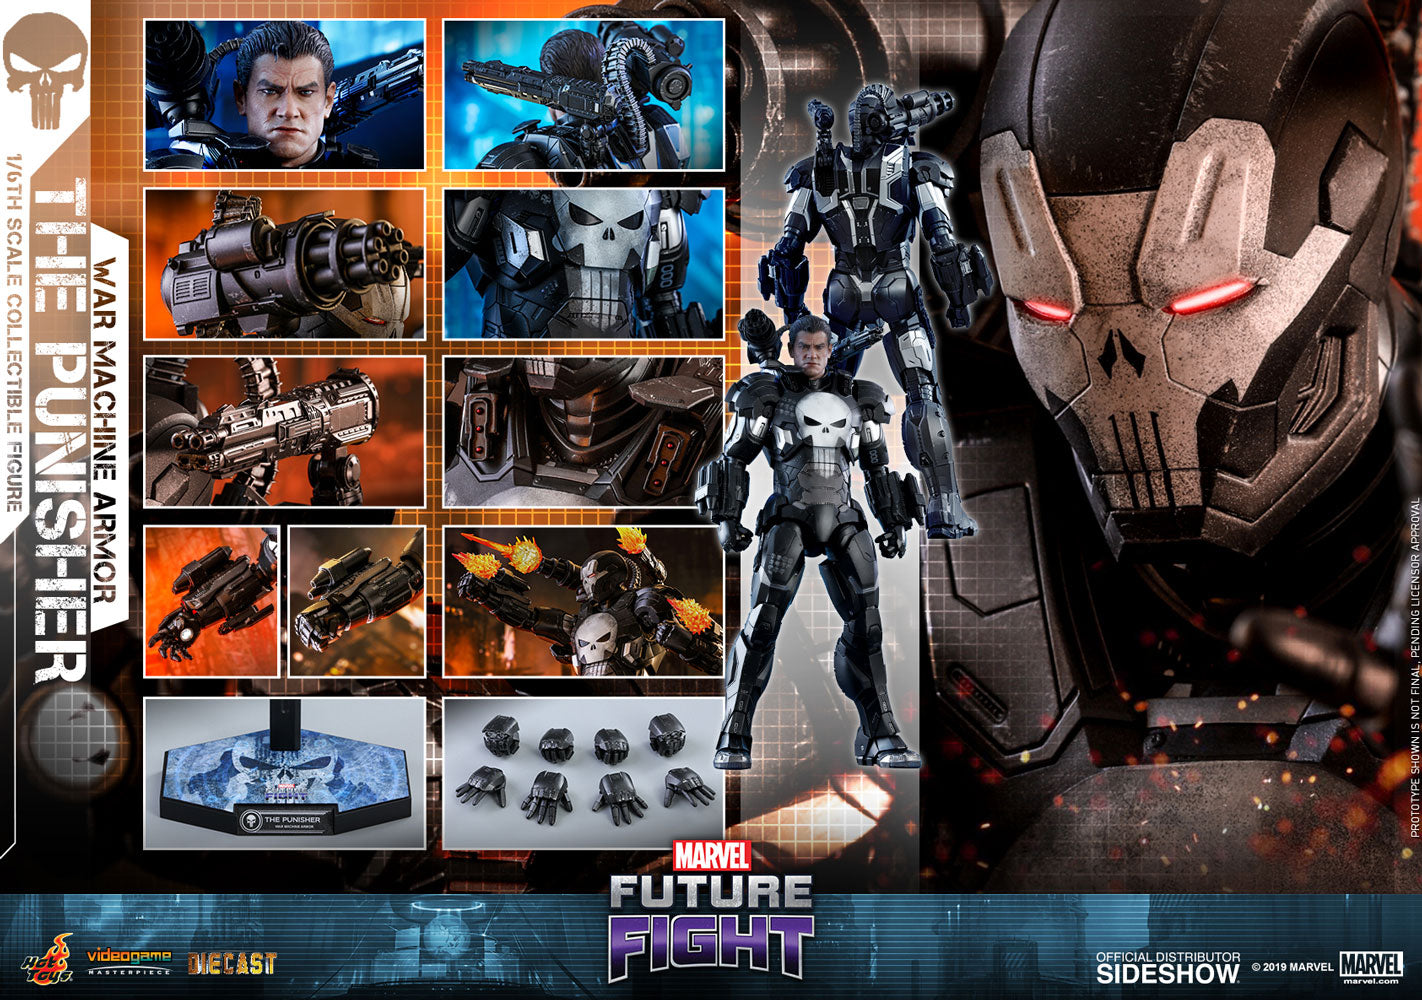 Punisher War Machine Armor Video Game Masterpiece Series - Collectors Row Inc.